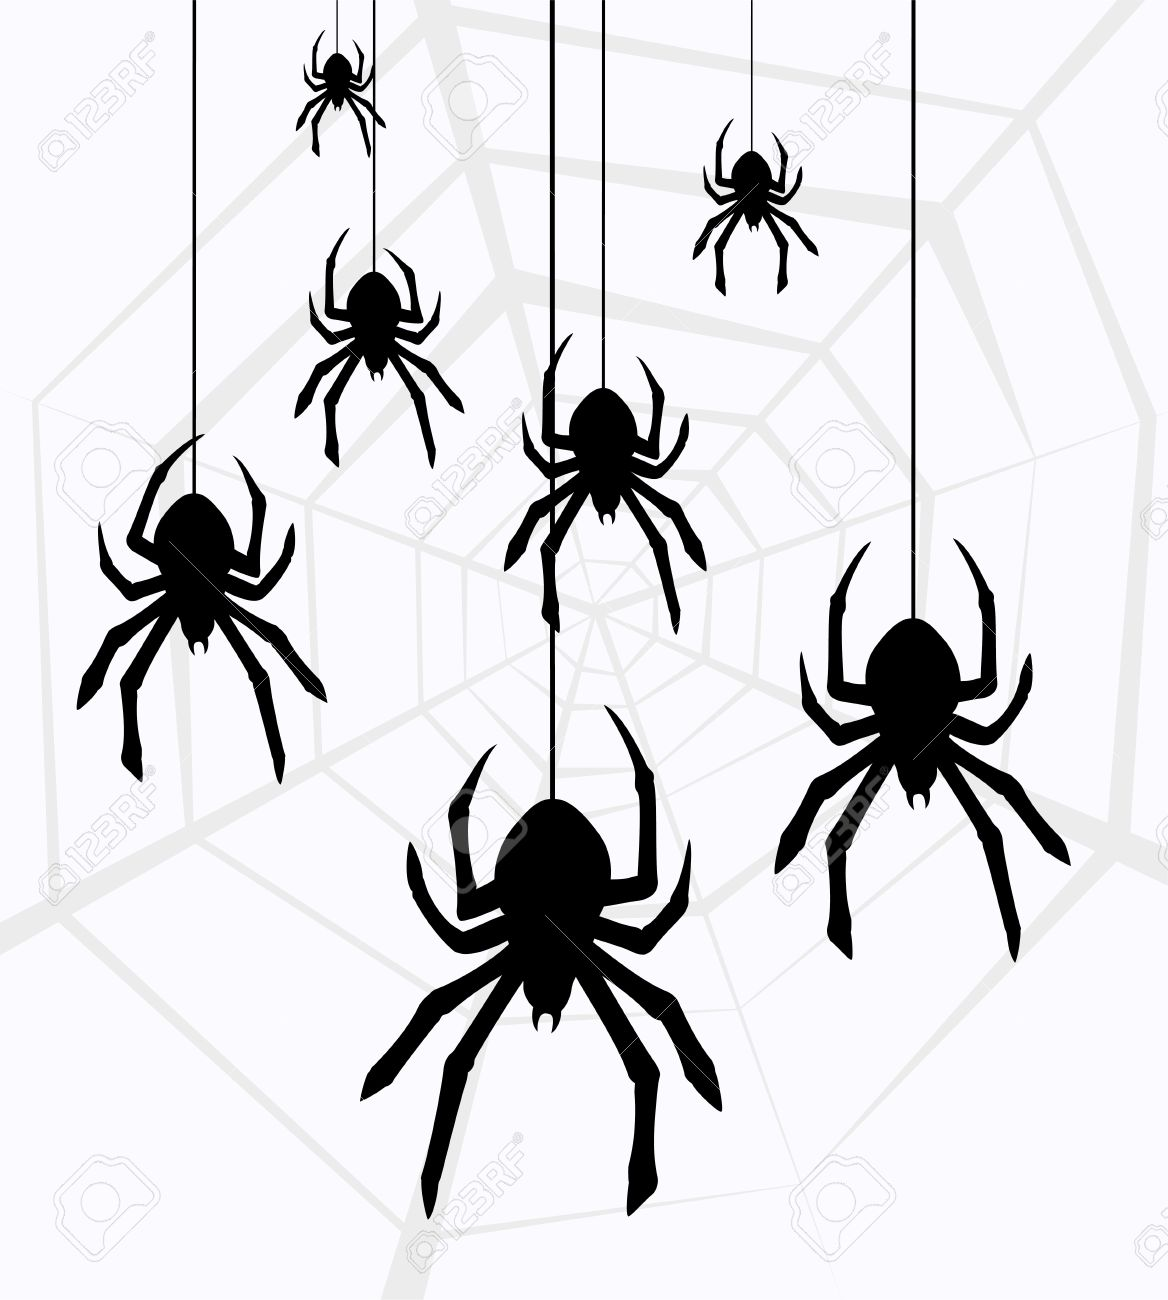 Spiders clipart - ClipartFest-Spiders clipart - ClipartFest-16